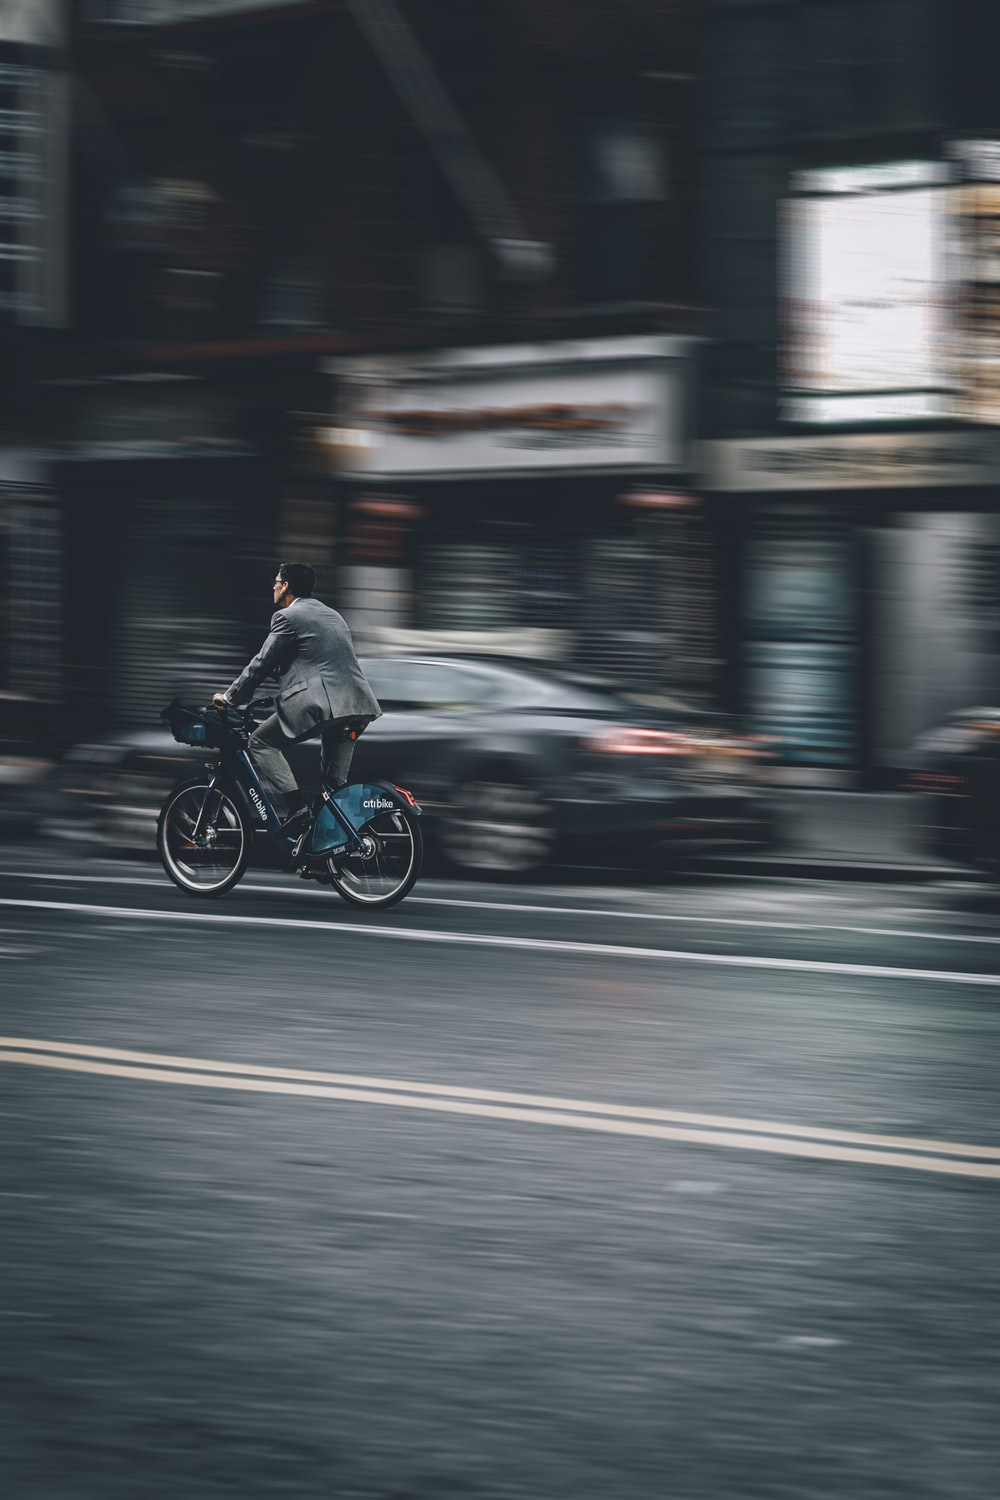 person riding bicycle on road